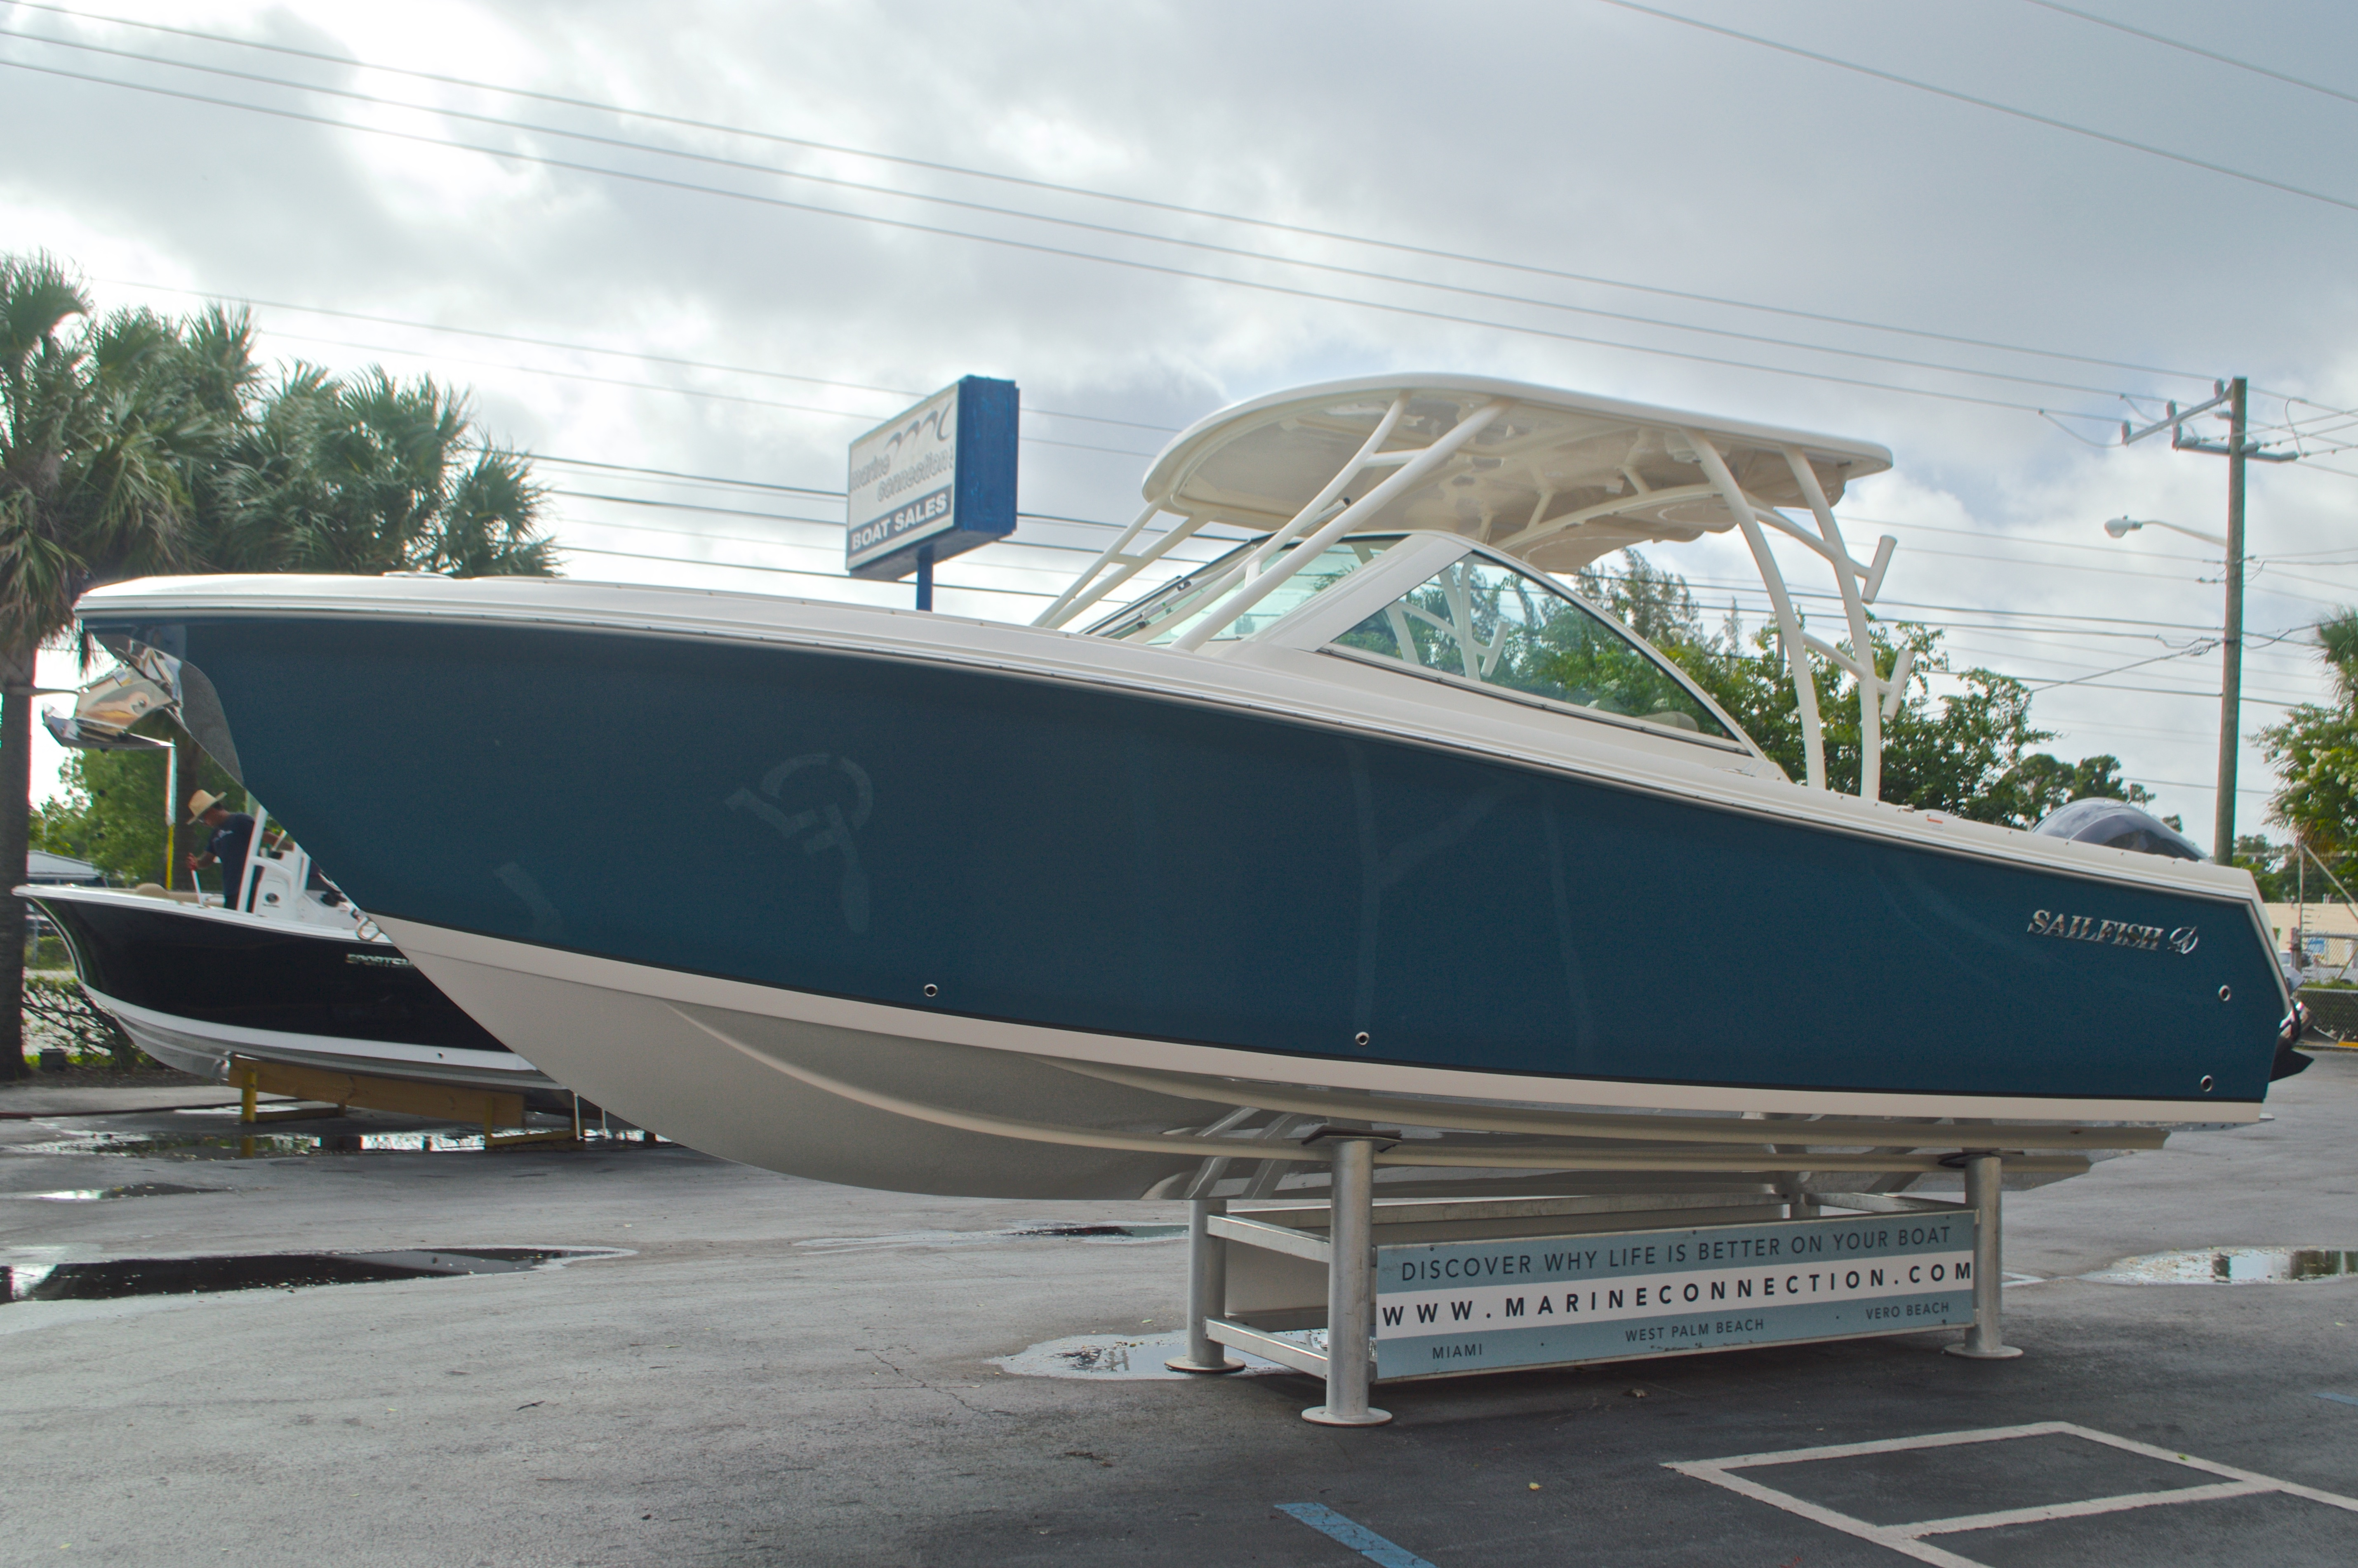 Thumbnail 3 for New 2017 Sailfish 275 Dual Console boat for sale in West Palm Beach, FL